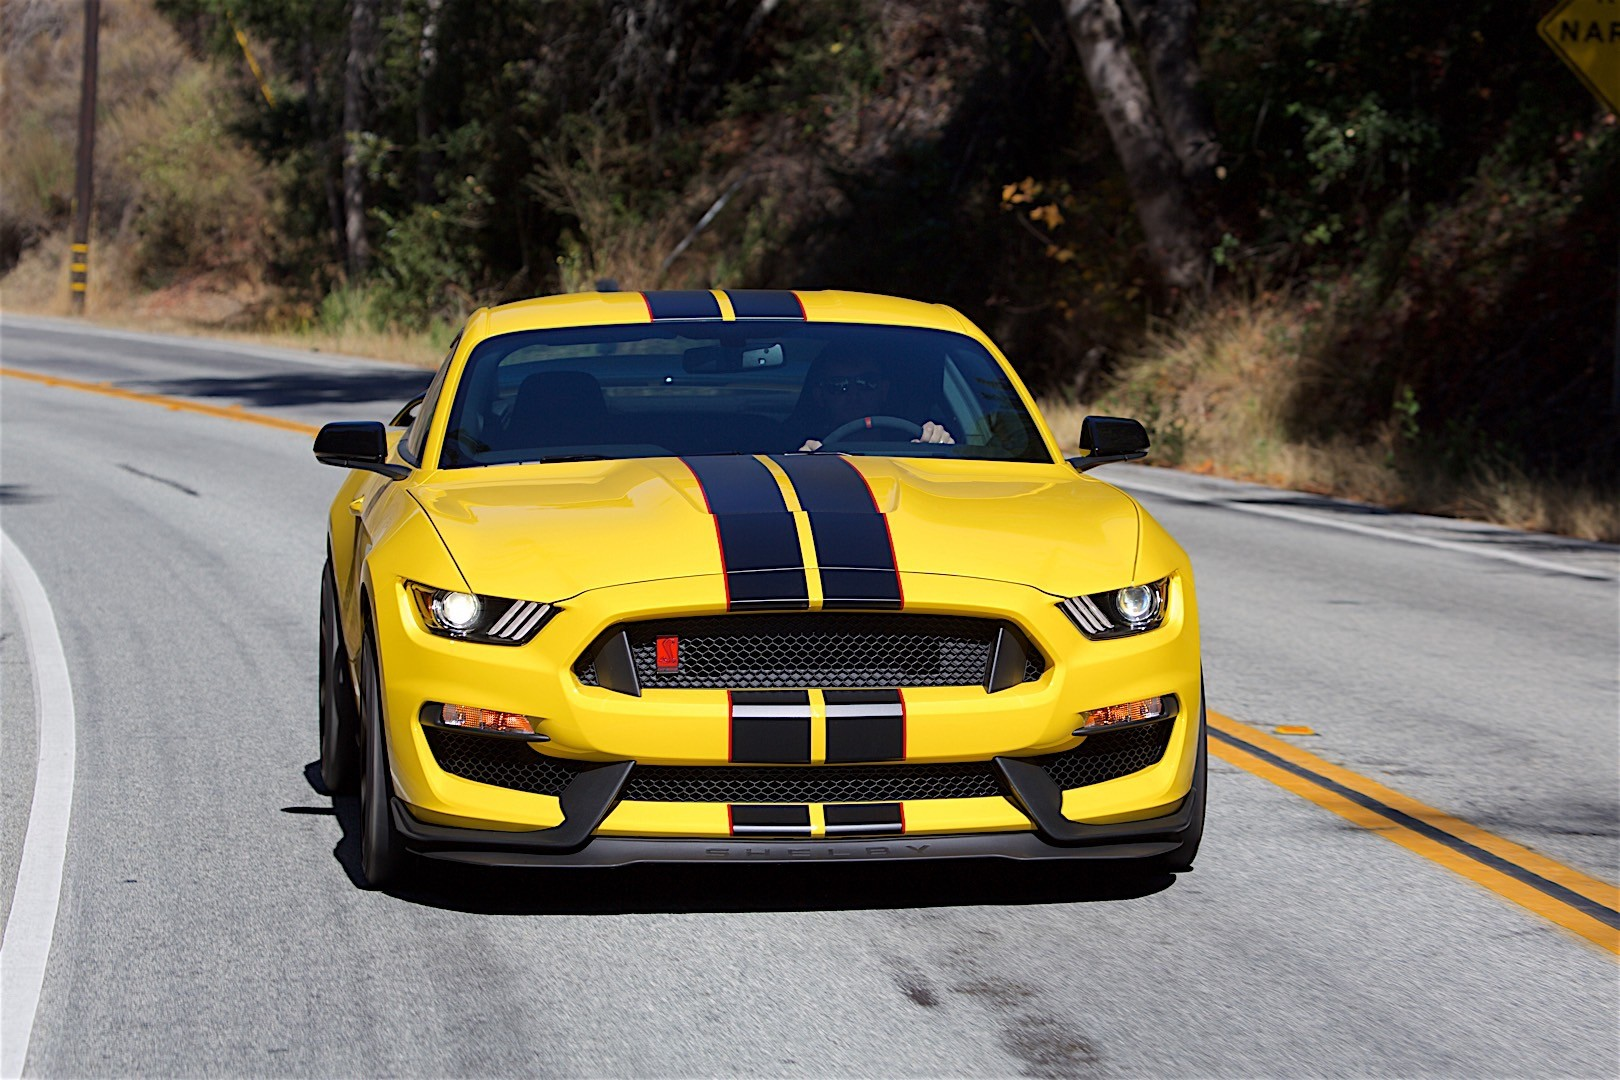 Ford Fusion Parts >> FORD Mustang Shelby GT350R - 2015, 2016, 2017 - autoevolution